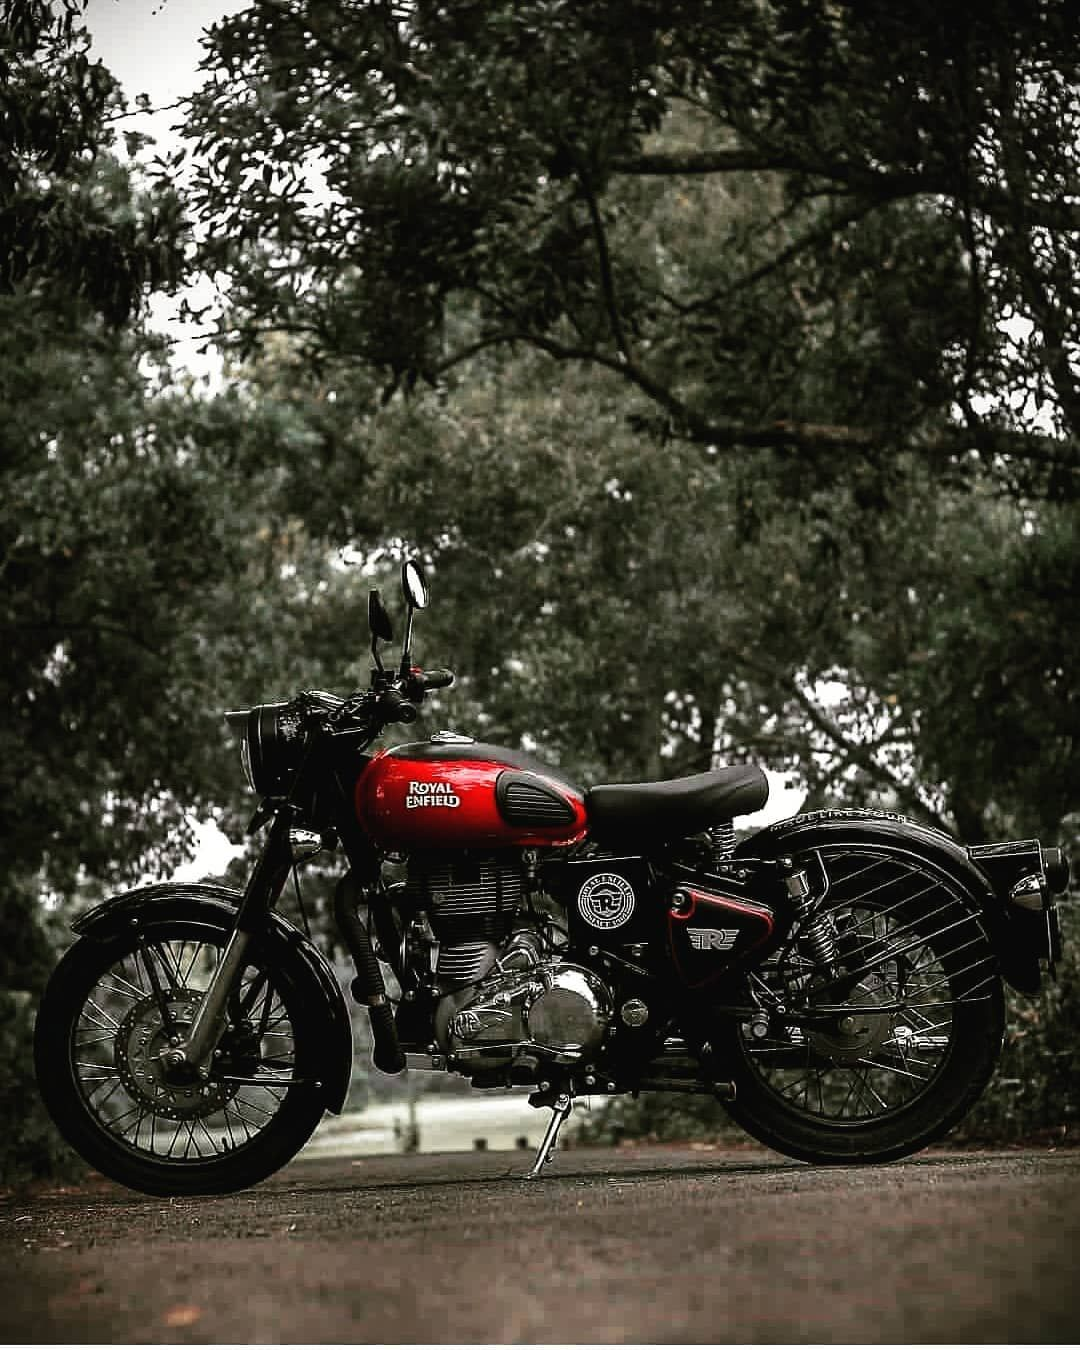 Royalenfieldofficial Zonabikers Royalenfield Zonabikersdotcom